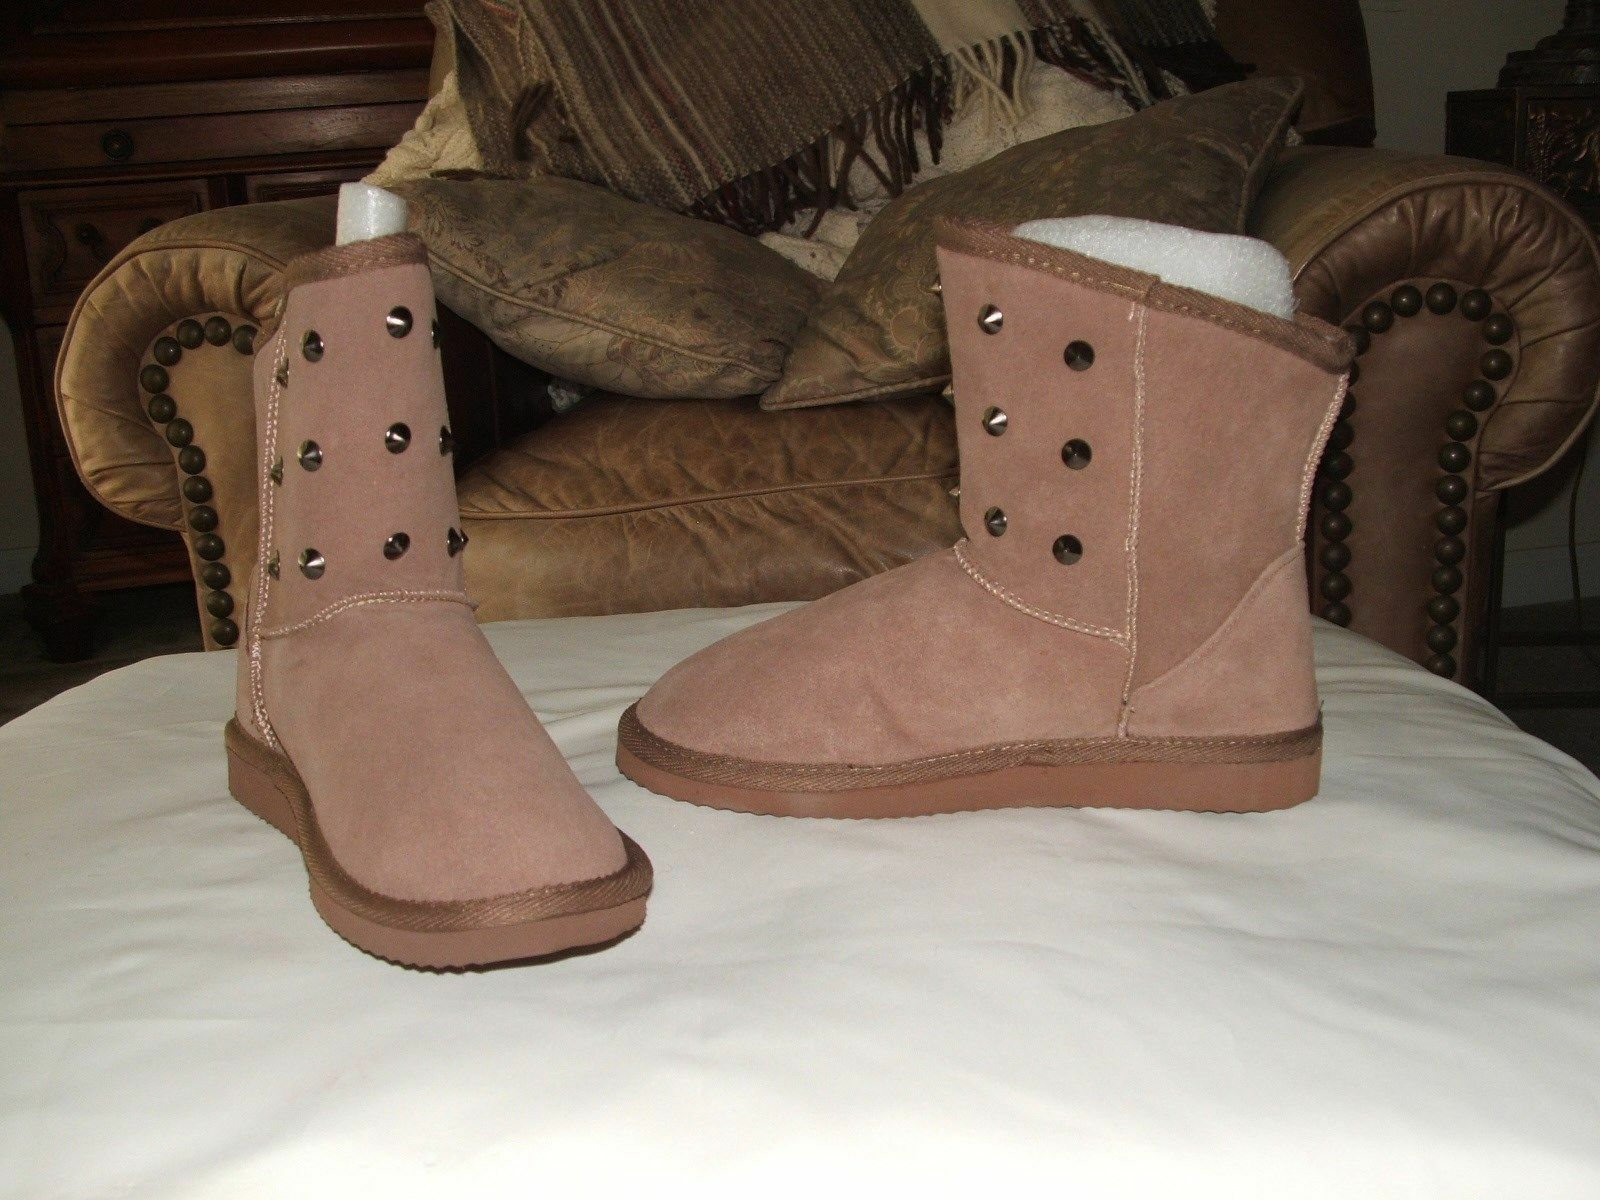 NEW IN Box Arizona Sand Suede Casual faux sheepskin lined Boots  size 6 m